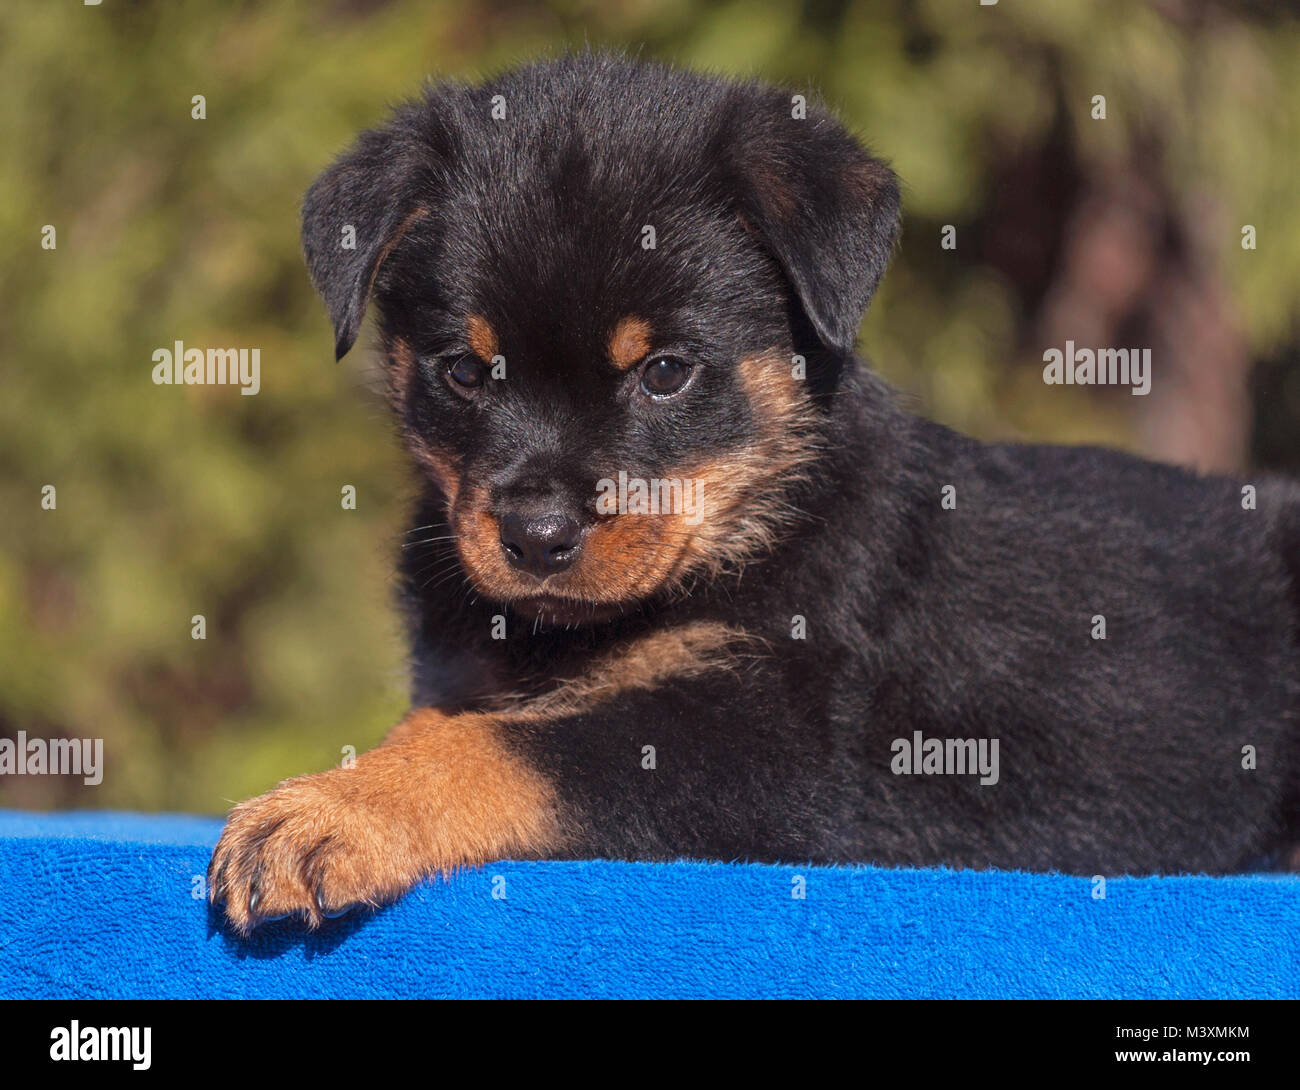 Cute Rottweiler Puppy Lying On A Blue On A Blue Towel Stock Photo